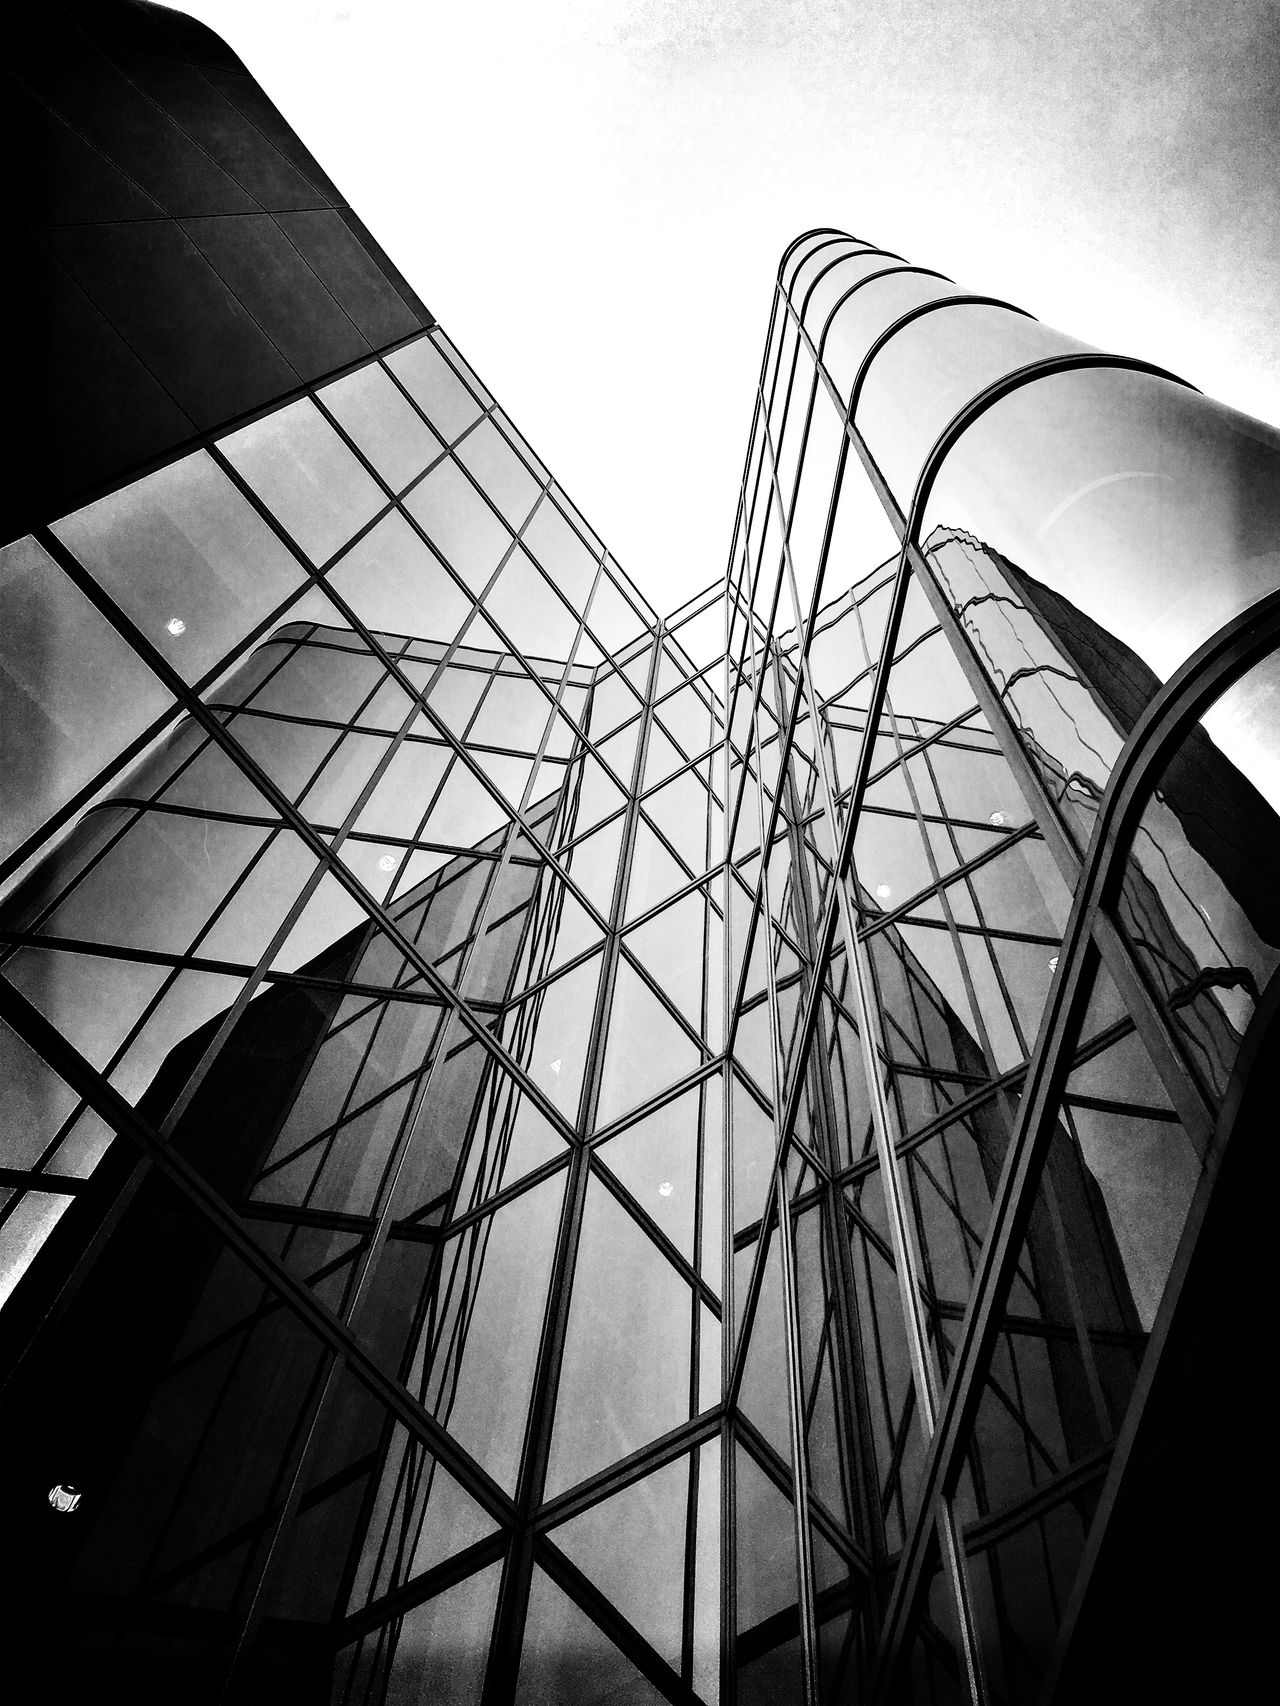 Architecture Bnw Bnw_captures Bnw_collection Building Exterior Built Structure Connection Day Glass Glass Building Lines Lines And Shapes Lookingup Lookup Low Angle View No People Office Building Office Building Exterior Outdoors Reflection Reflections Shapes Shapes And Forms Sky Windows